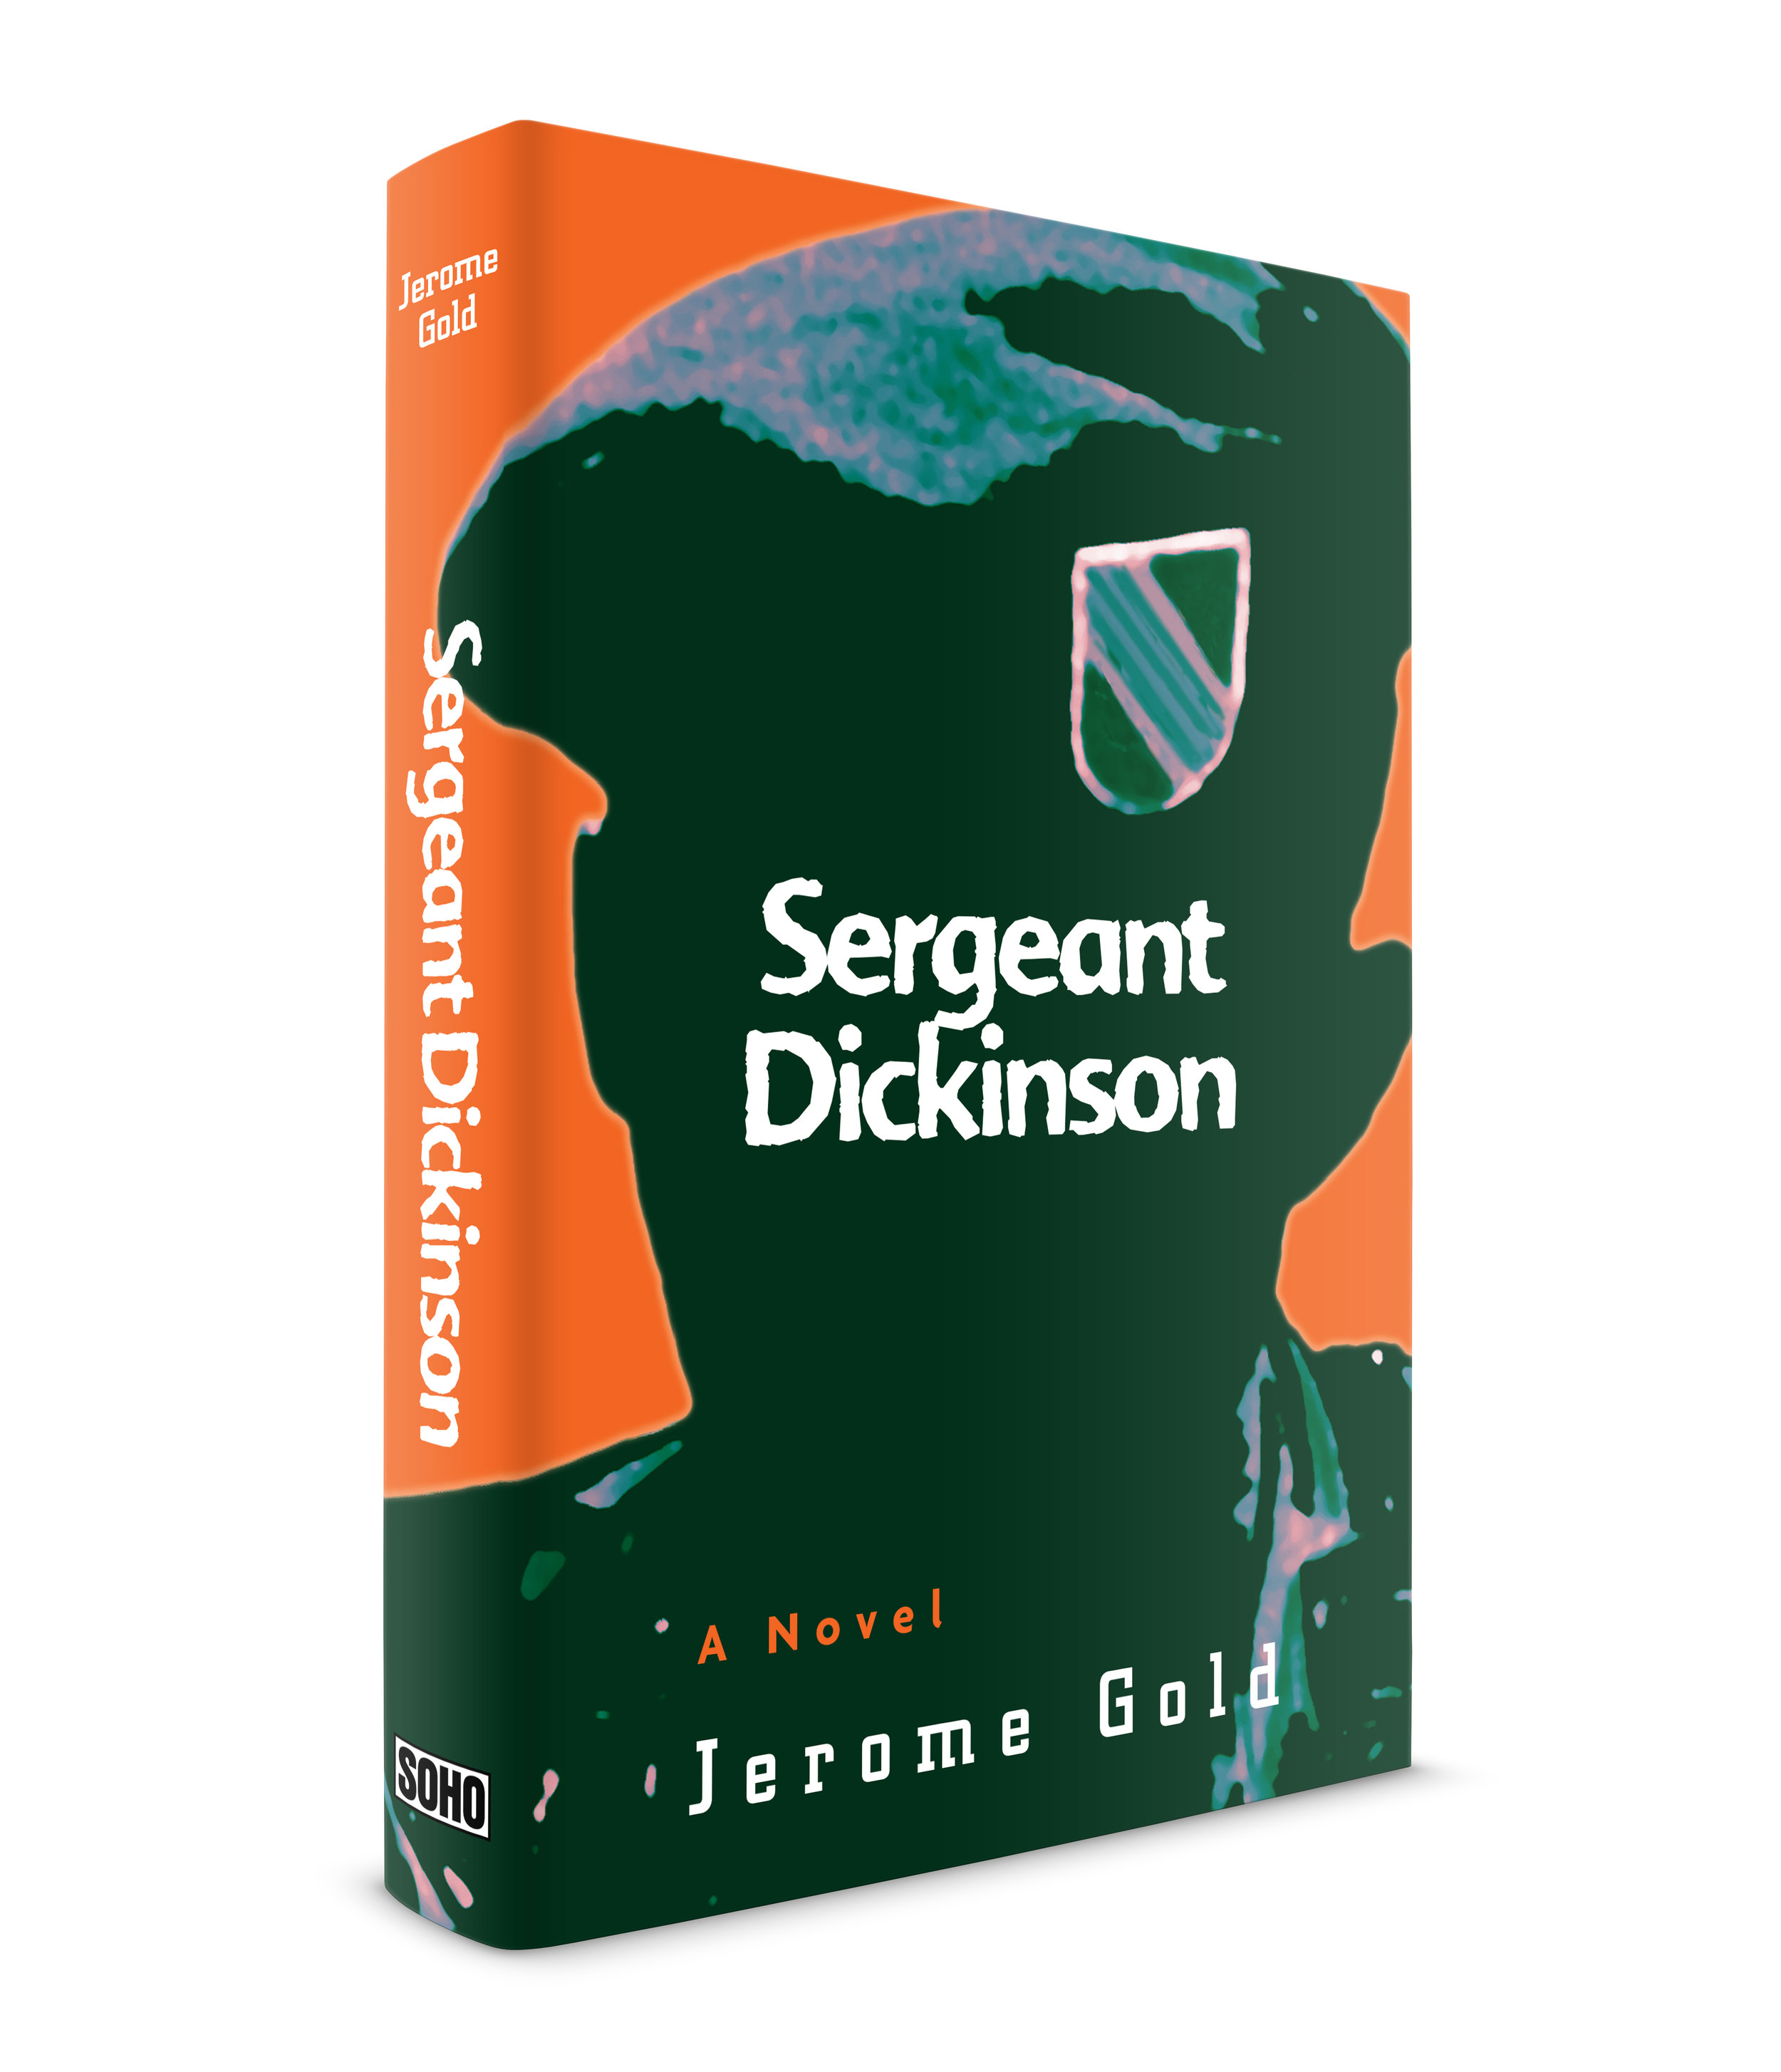 Sergeant Dickinson, by Jerome Gold, published by Soho Press. This was my first Vietnam novel. I was very busy at the time but I remember thinking, this is an historic period and I must pay close attention to the story and put my best effort forward. Jerry Gold (the author) was a special forces officer in Vietnam who survived a particularly deadly attack in the early stages of the conflict. His novel spared no details in the gruesome and often, graphic depiction of war. He told the story with poetic grace. Juris Jurjevics , the publisher, and Jerry wanted to try something that made use of the special forces patch that the officers wore at the time. I tried it but it looked like a boy scout patch (I have another idea now that might work). I did my own research and found an image in my Dad's collection of National Geographic magazines (he had the entire collection from 1896 minus a few issues) of a special forces officer from the exact month and year that the story takes place. It was a tiny photo of an officer in a jeep. I enlarged the photo 1000% and performed some photoshop imaging. I blacked out the soldier's face, like they do on TV when an interviewed person has a particularly difficult story to tell. I then used a distressed typeface called, Advert Rough (FontFont) and placed the title right on the center of the darkened area. Juris and Jerry the author agreed on the layout. Jerry said he had not seen that badge on the beret in almost 40 years. When the author likes the cover, you know you did well.